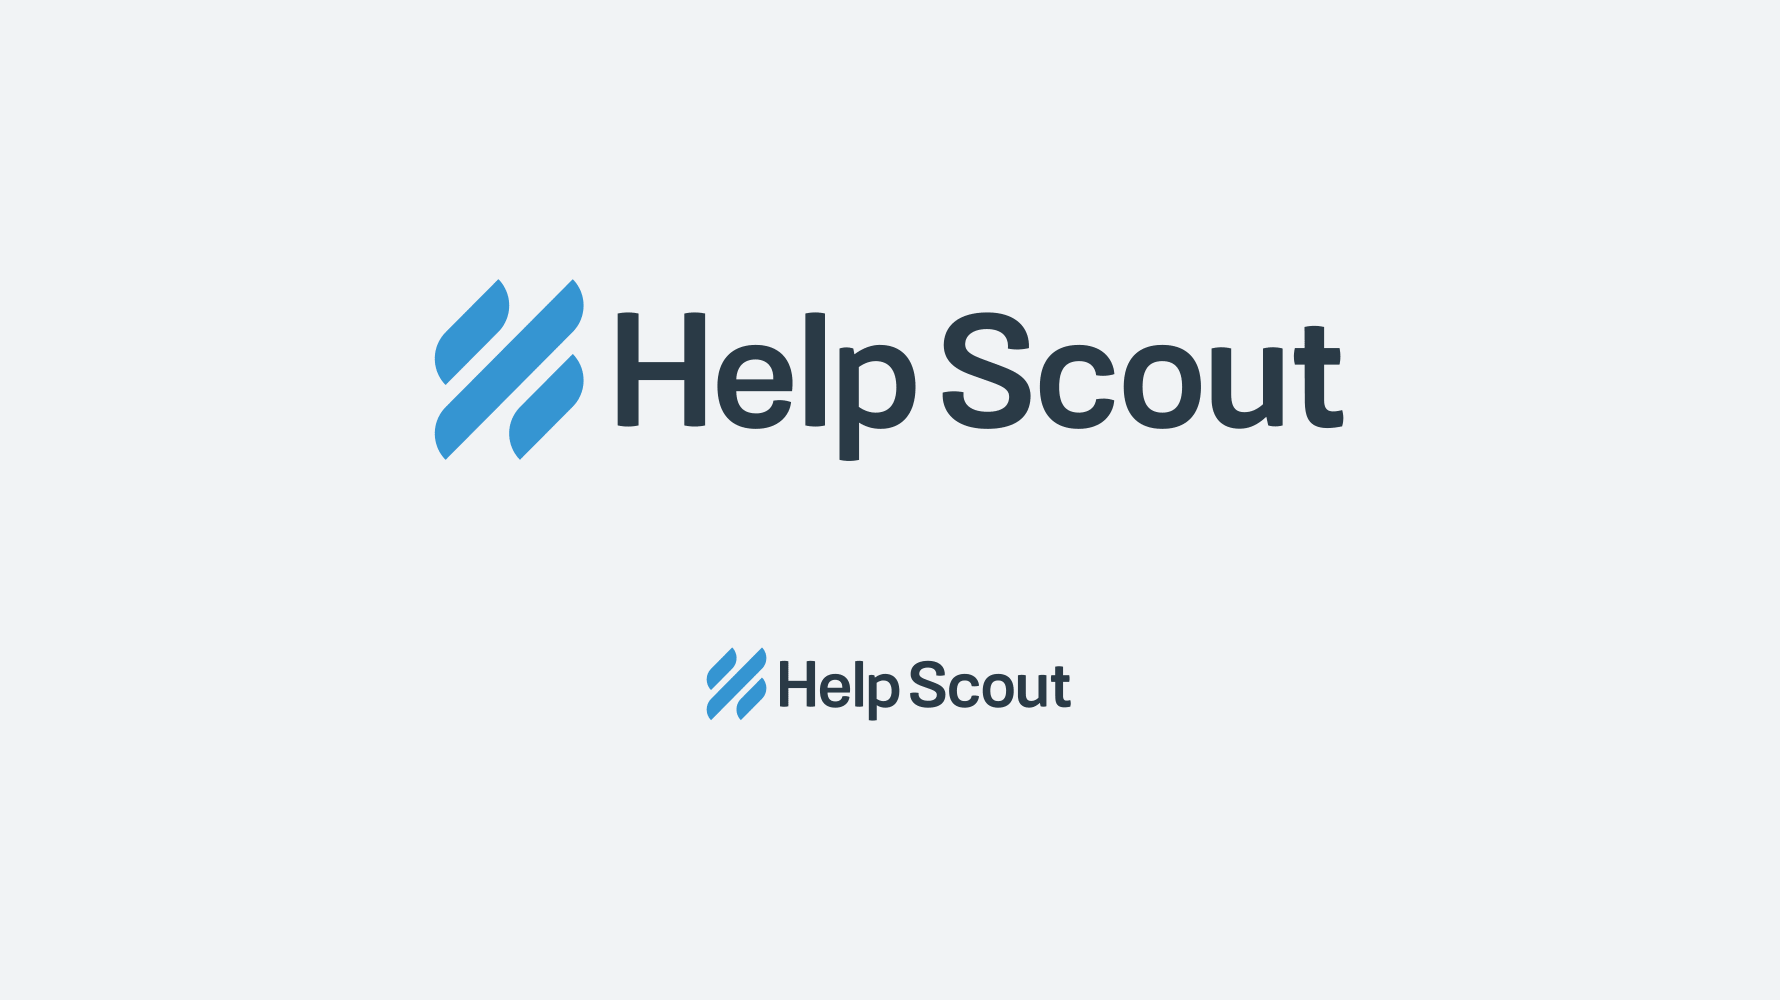 new help scout logo